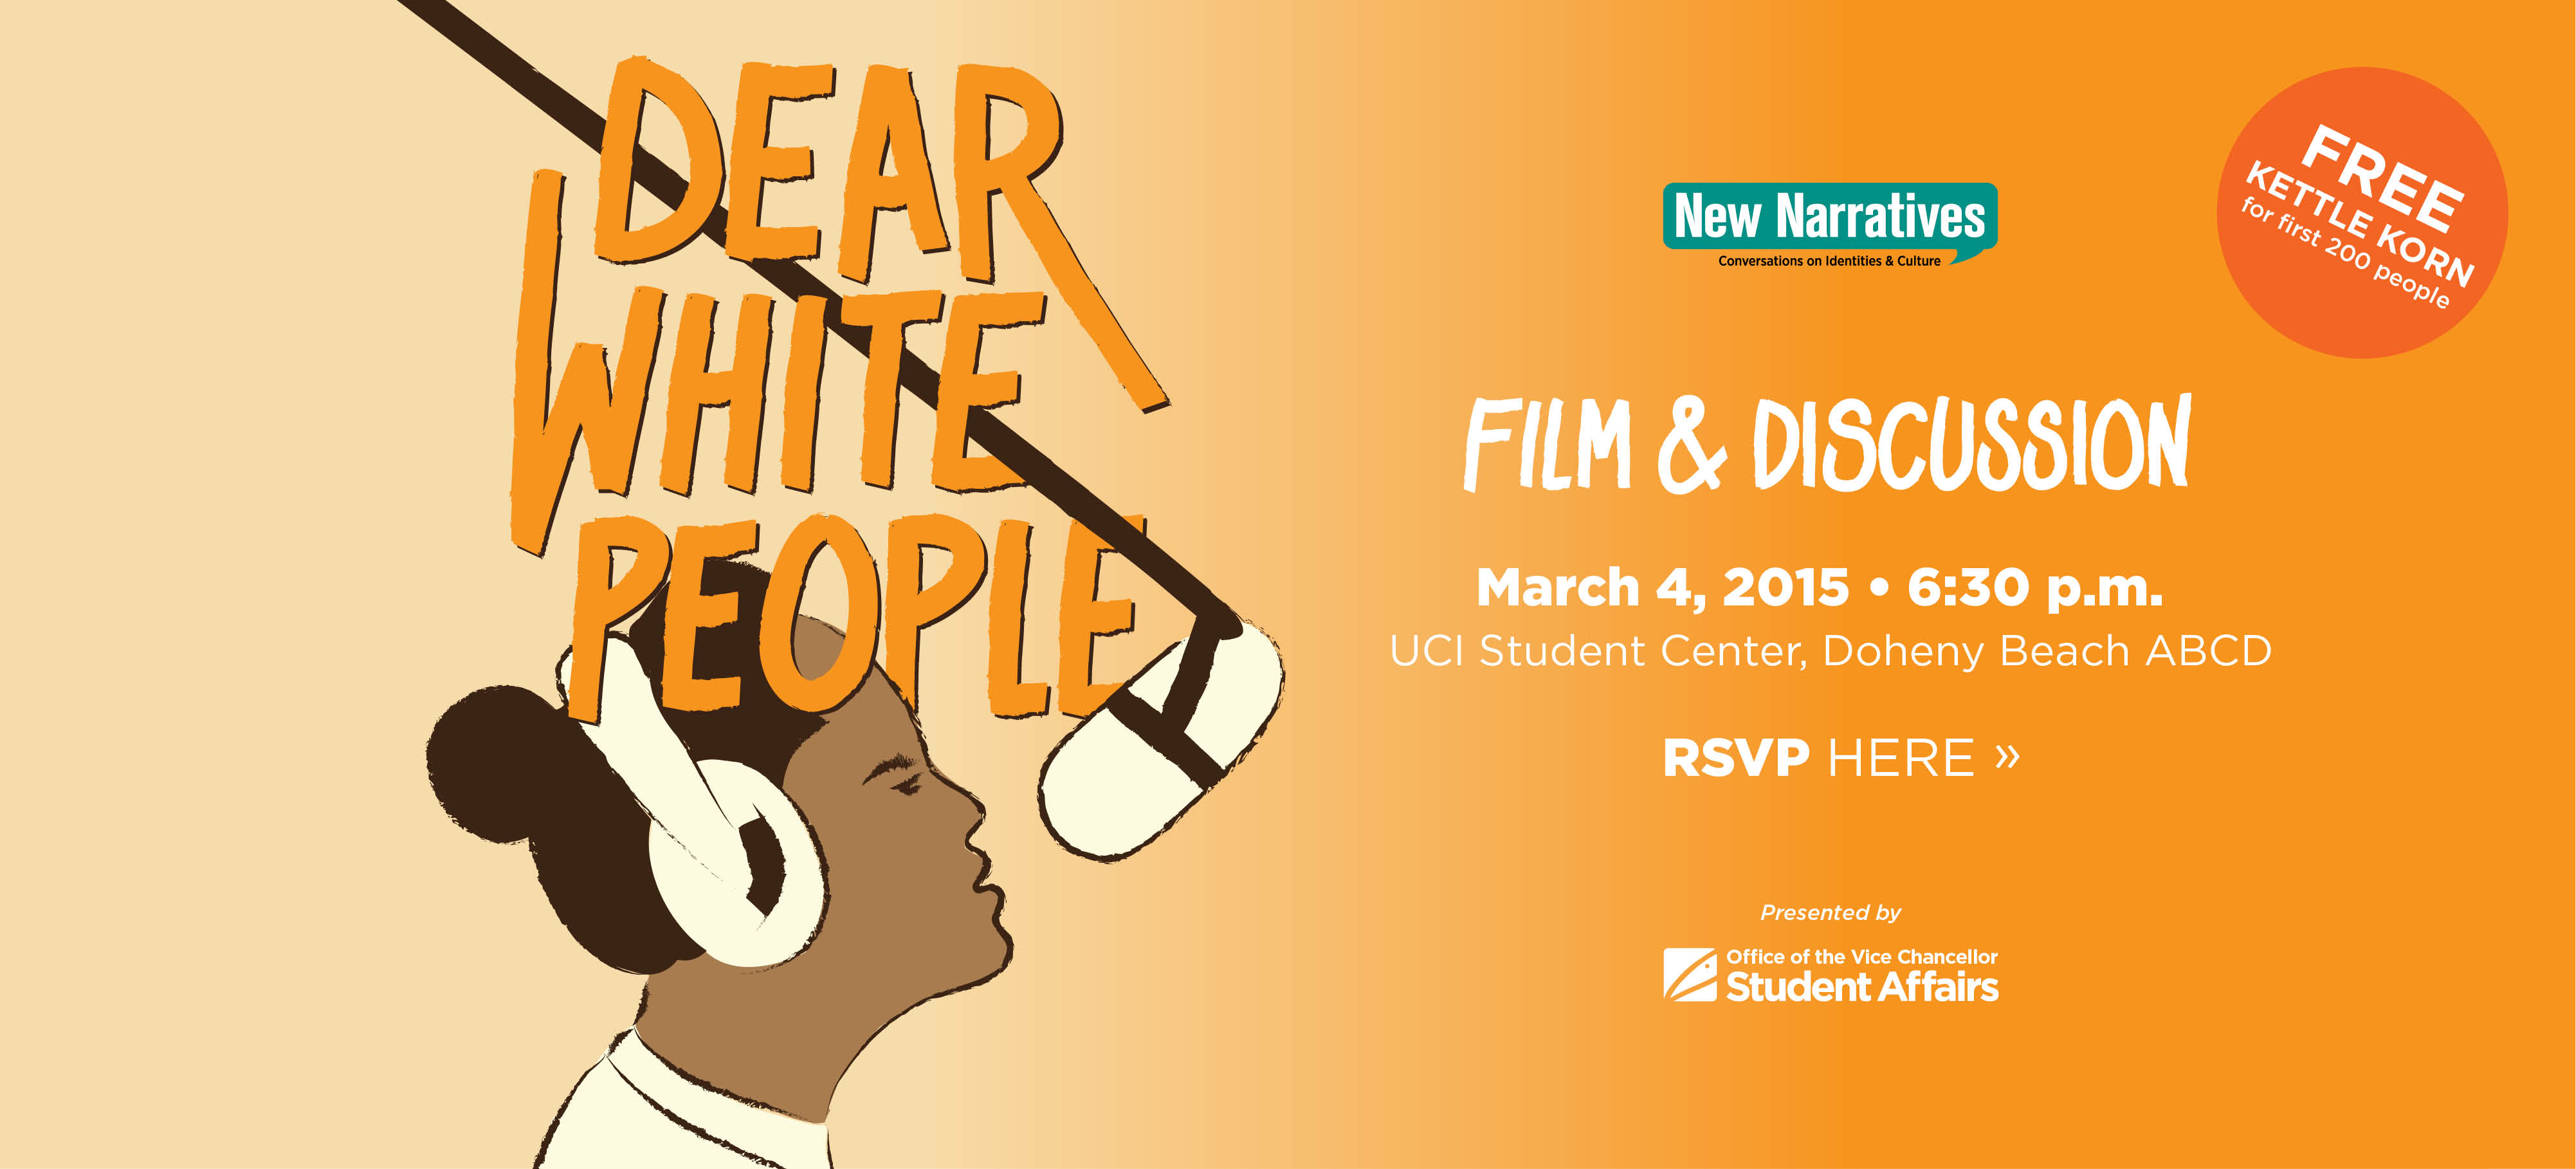 Join us for an exclusive screening of Dear White People with the film's producer, Lena Waithe.